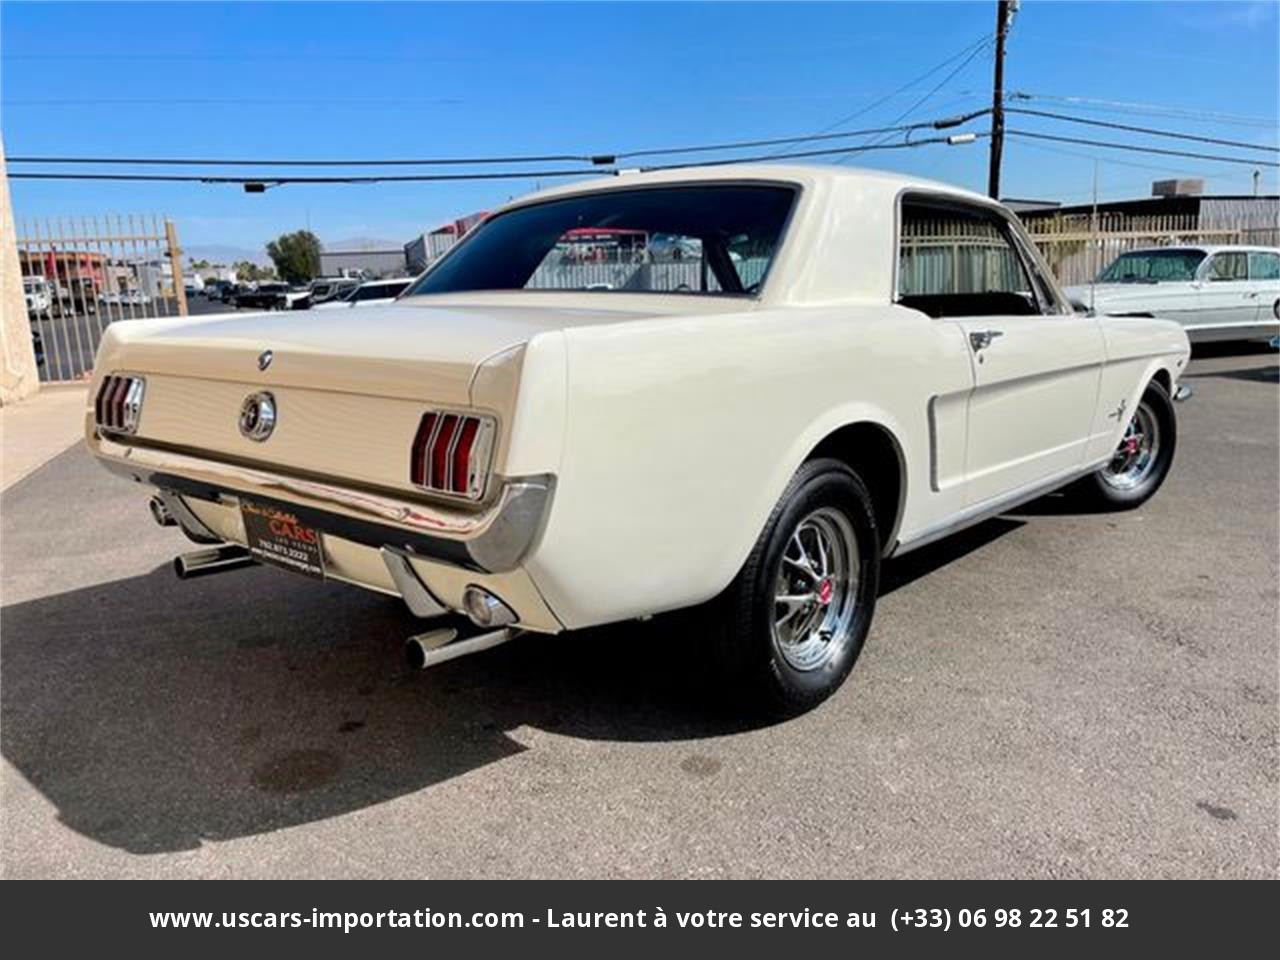 Ford Mustang V8 1965 prix tout compris